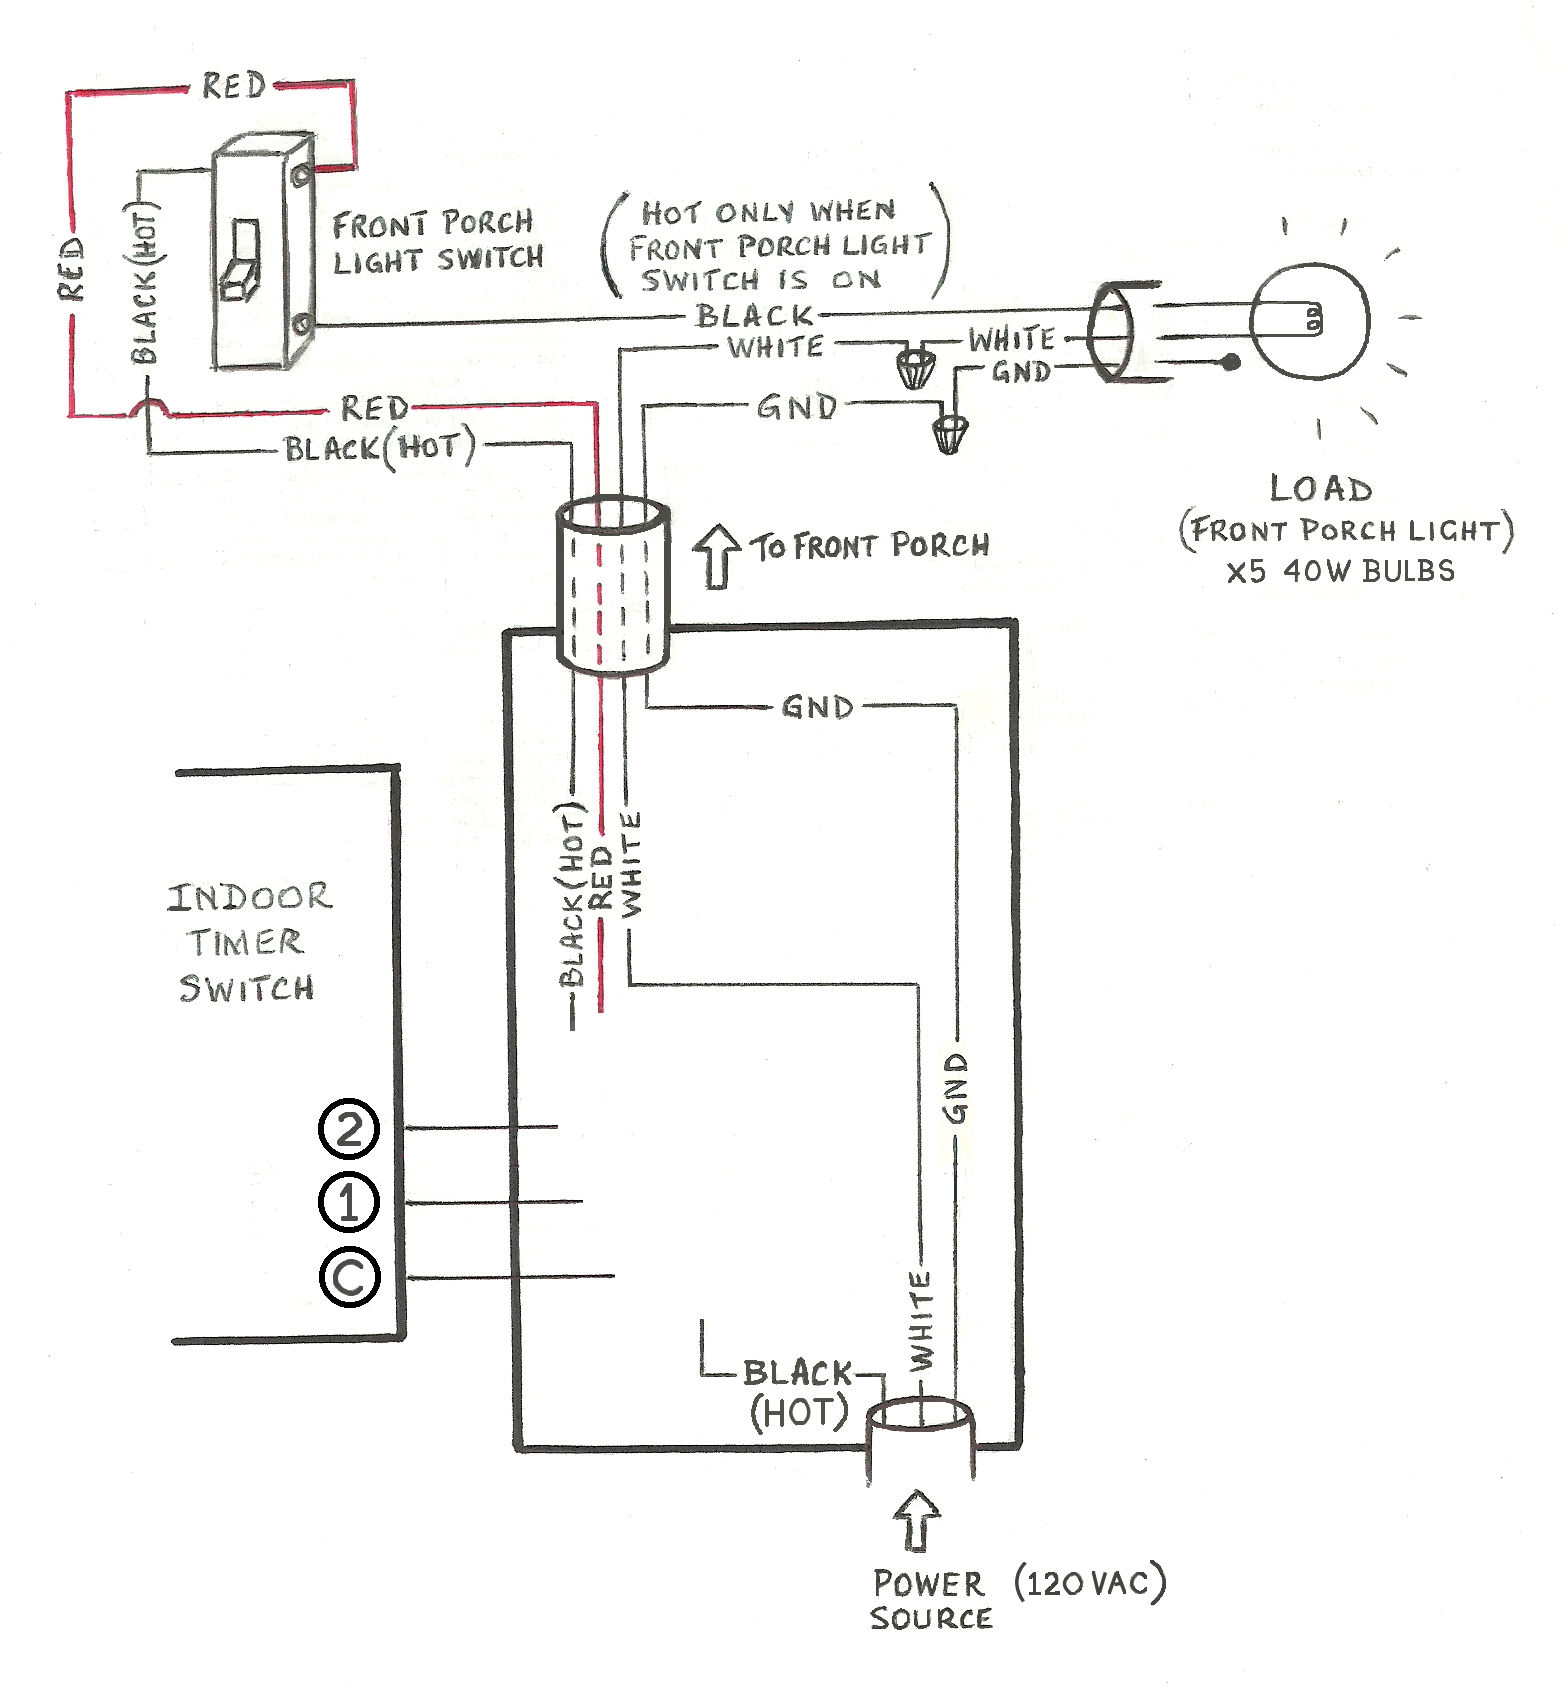 hight resolution of need help wiring a 3 way honeywell digital timer switch home rh diy stackexchange com spdt